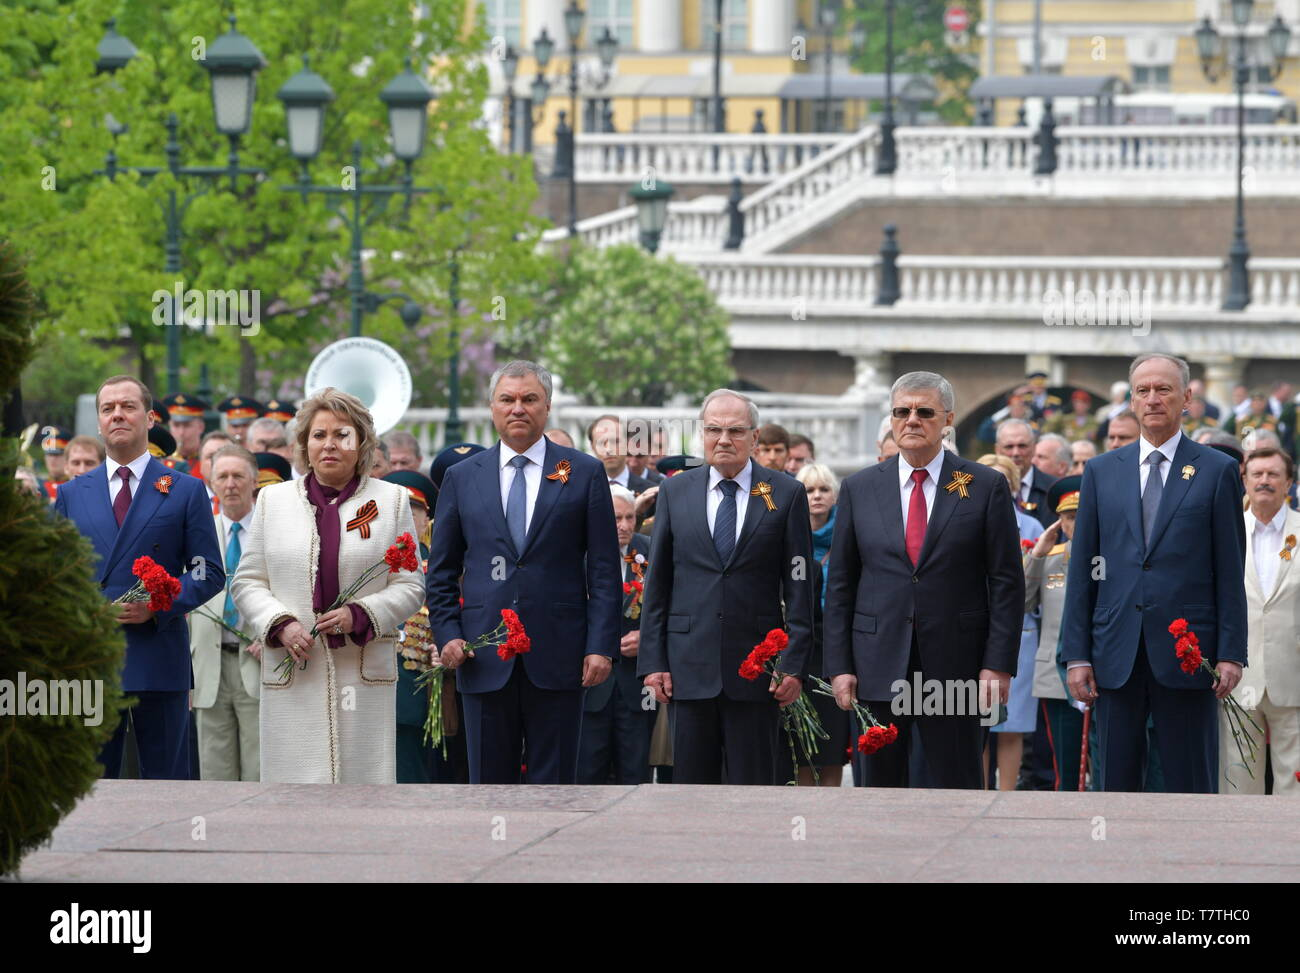 MOSCOW, RUSSIA - MAY 9, 2019: Russia's Prime Minister Dmitry Medvedev, Russian Federation Council Chairwoman Valentina Matviyenko, Russian State Duma Chairman Vyacheslav Volodin, Russian Constitutional Court Chairman Valery Zorkin, Russian Prosecutor General Yuri Chaika, Russia's President Vladimir Putin, and Russian Security Council Secretary Nikolai Patrushev (L-R) during a ceremony to lay flowers at the Tomb of the Unknown Soldier by the Kremlin Wall during celebrations marking the 74th anniversary of the victory of the Soviet Red Army over Nazi Germany in the Great Patriotic War of 1941-45 - Stock Image